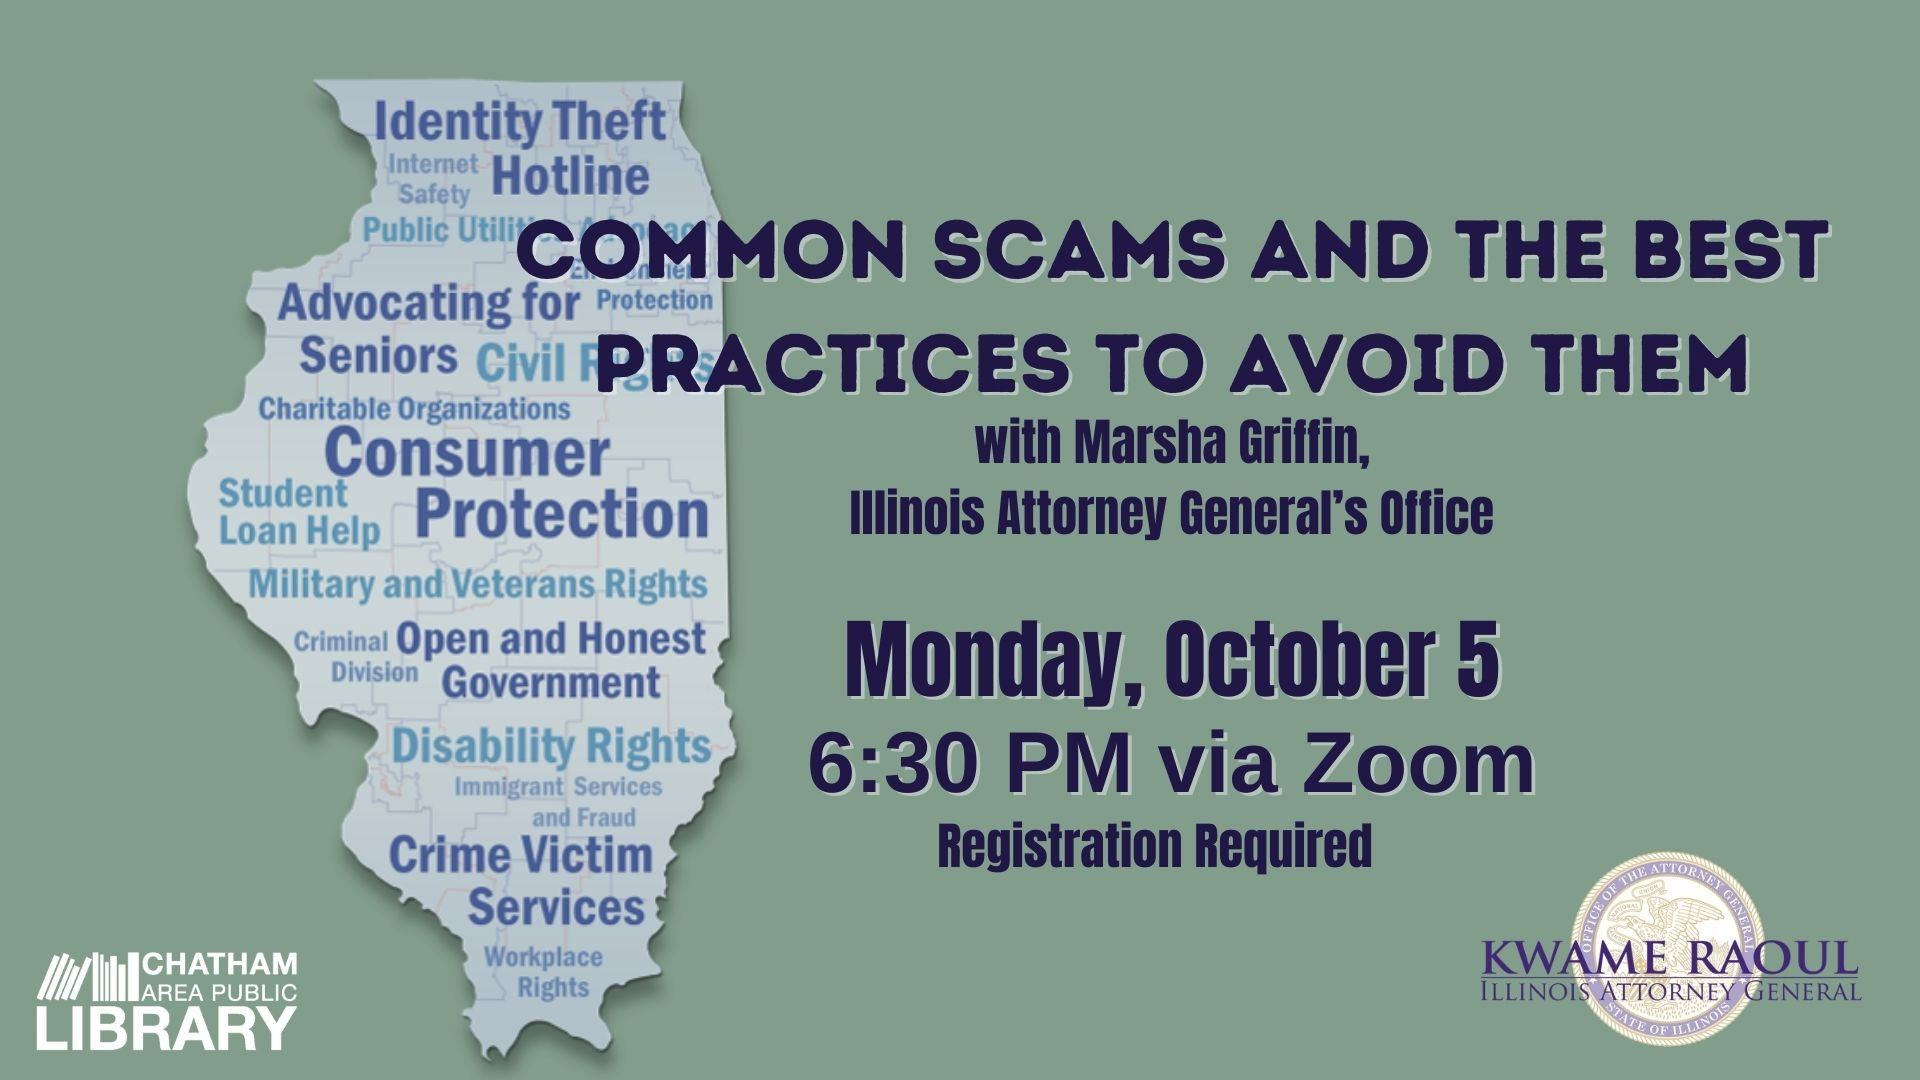 Chatham Area Public Library to Virtually Host a Presentation on Common Scams and How to Avoid Them